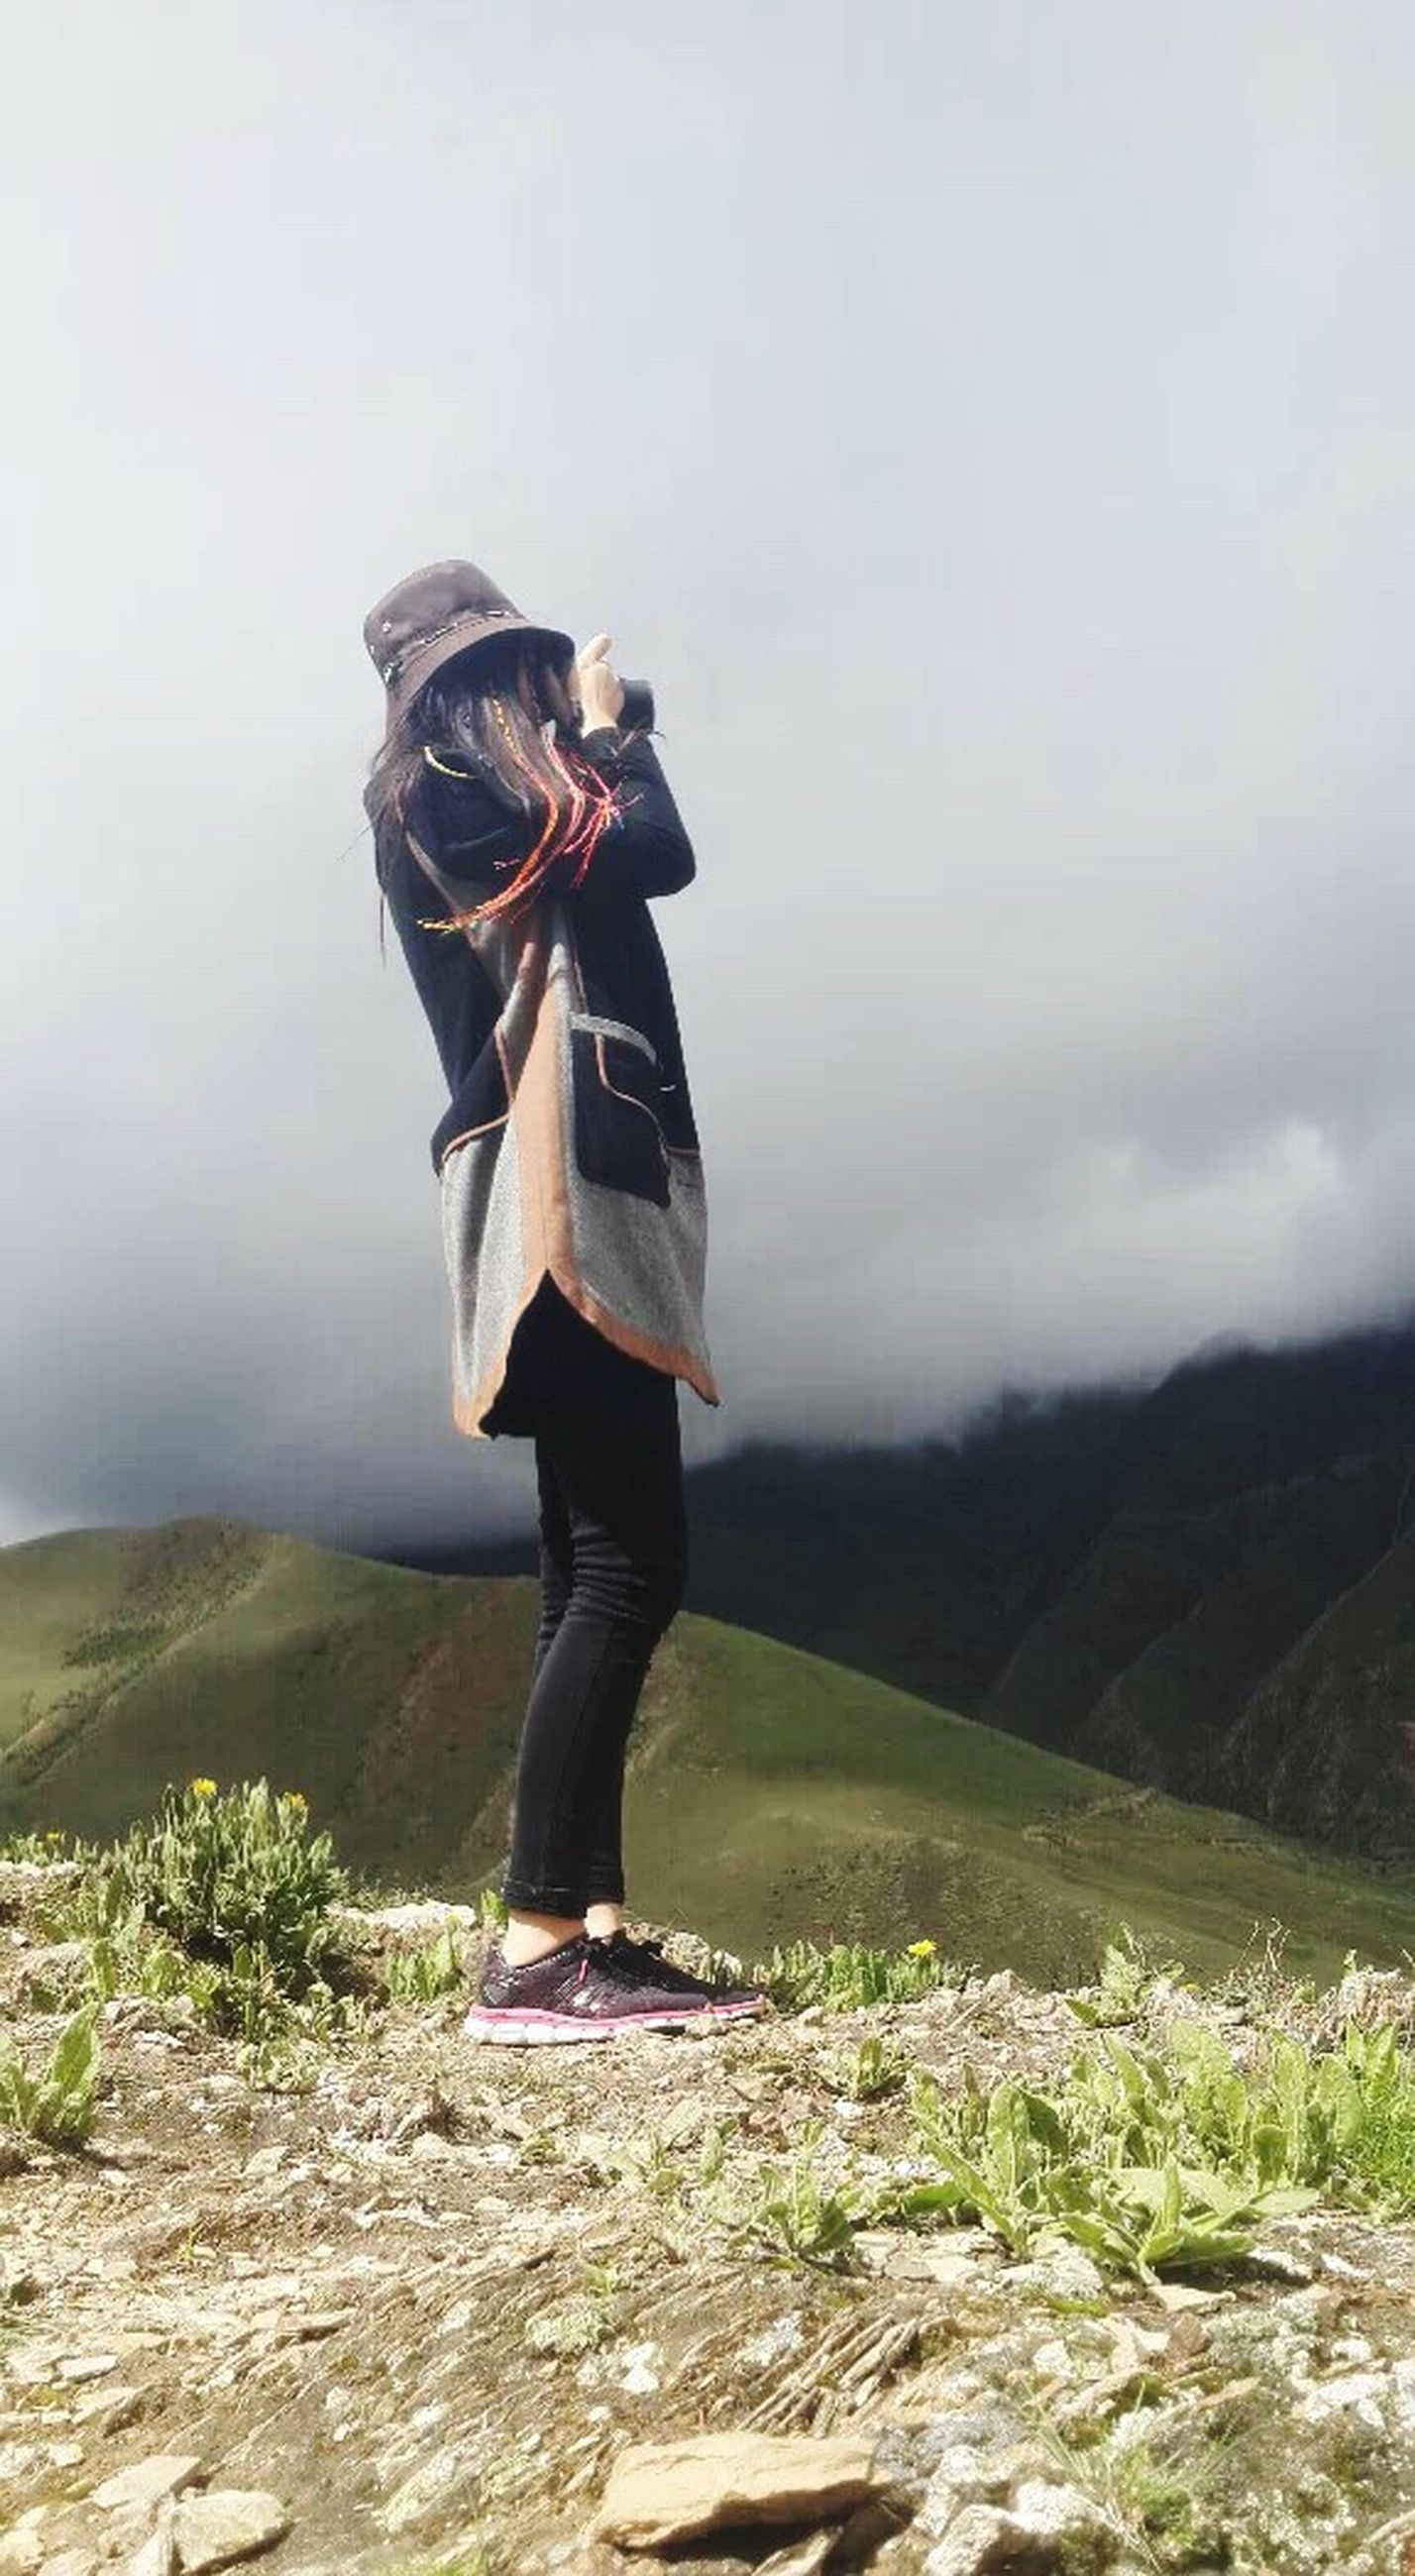 full length, lifestyles, leisure activity, standing, casual clothing, rear view, mountain, sky, tranquil scene, landscape, tranquility, nature, beauty in nature, getting away from it all, men, scenics, young adult, person